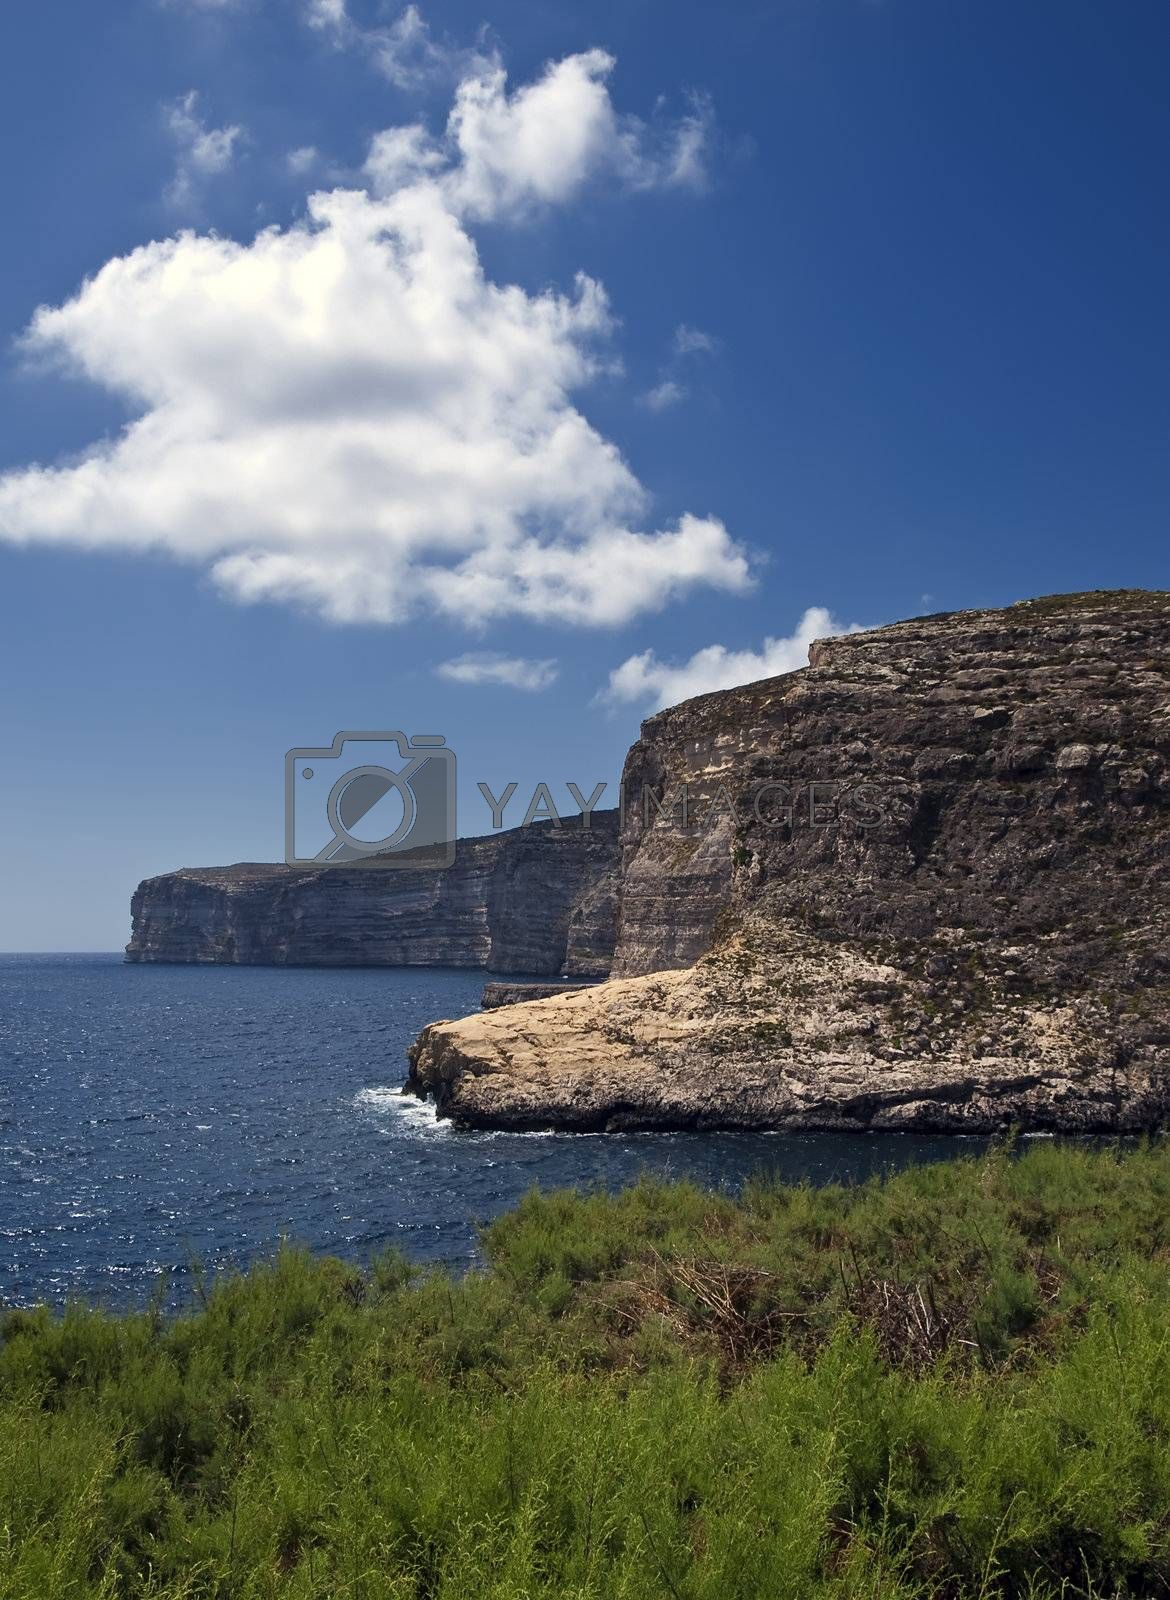 Royalty free image of Xlendi Cliffs by PhotoWorks